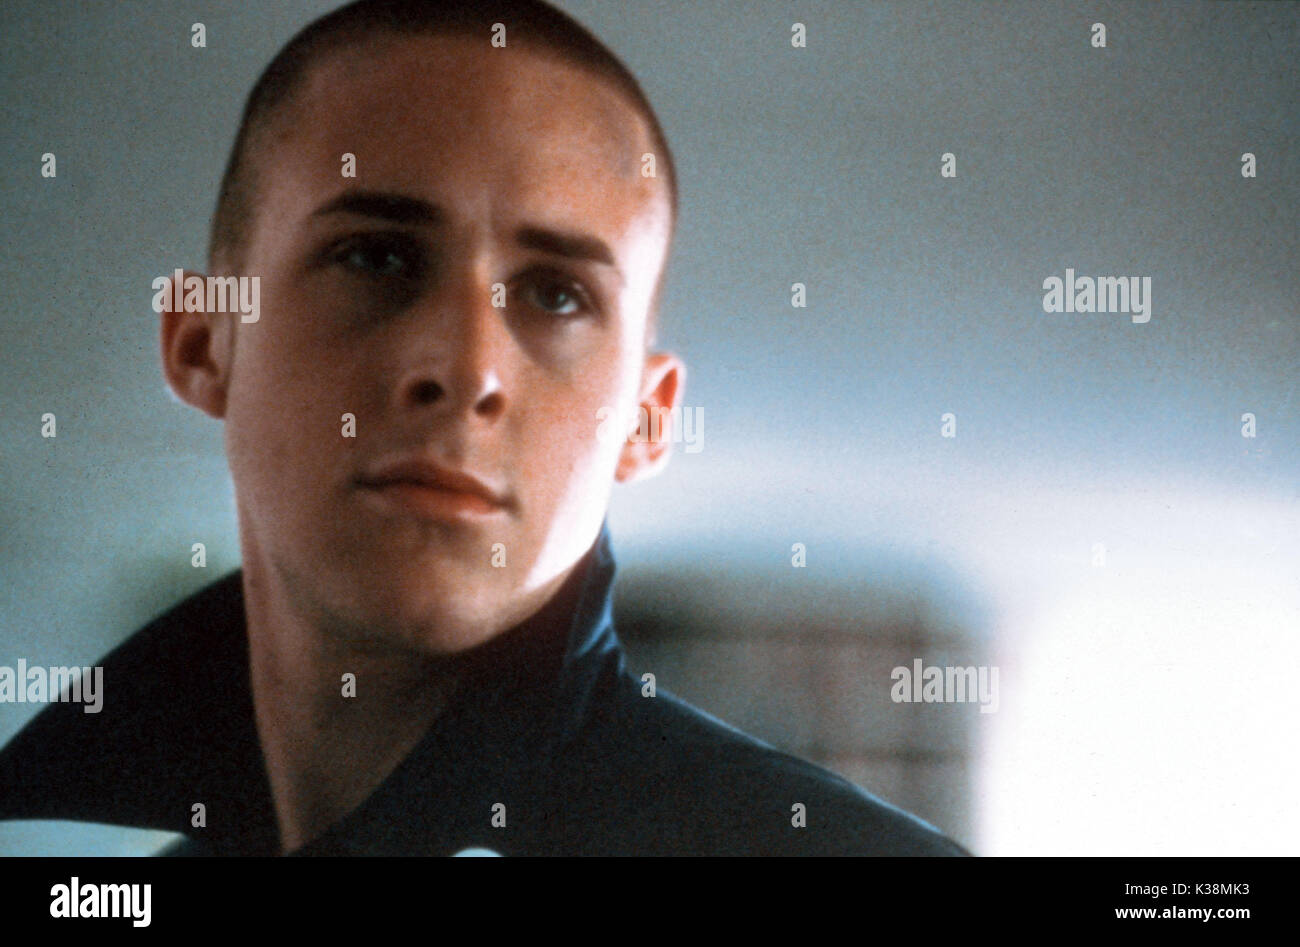 THE BELIEVER RYAN GOSLING Date: 2001 Stock Photo - Alamy